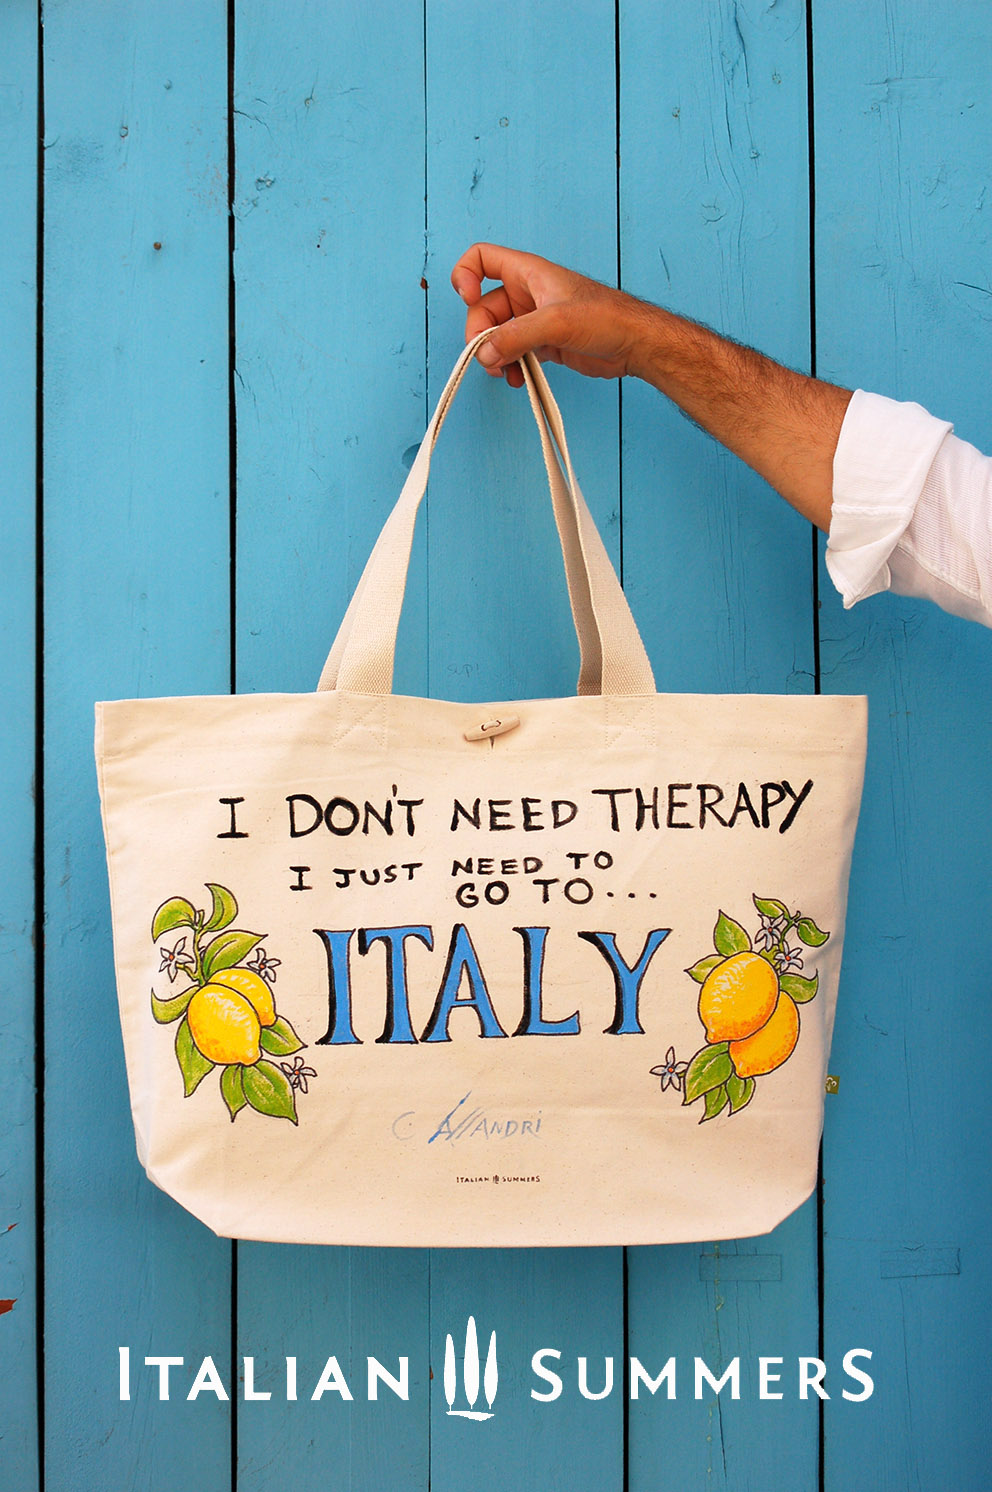 I don't need therapy bag